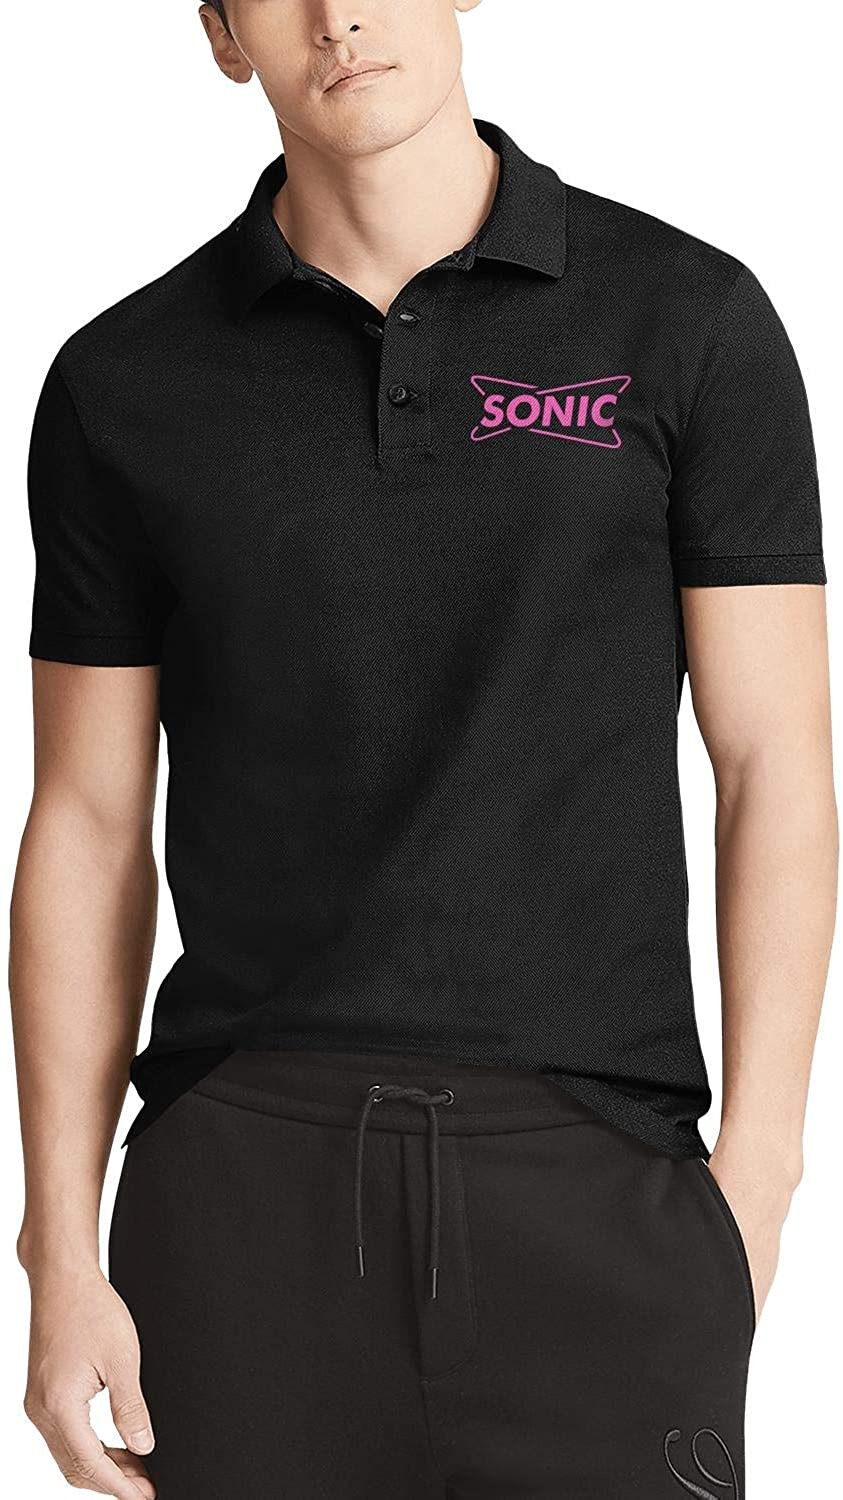 Men Black Short Sleeve Collared Polo T-Shirt Sonic-Drive-in-America-Flash-Gold- Quick Dry Buttons Tee Tops